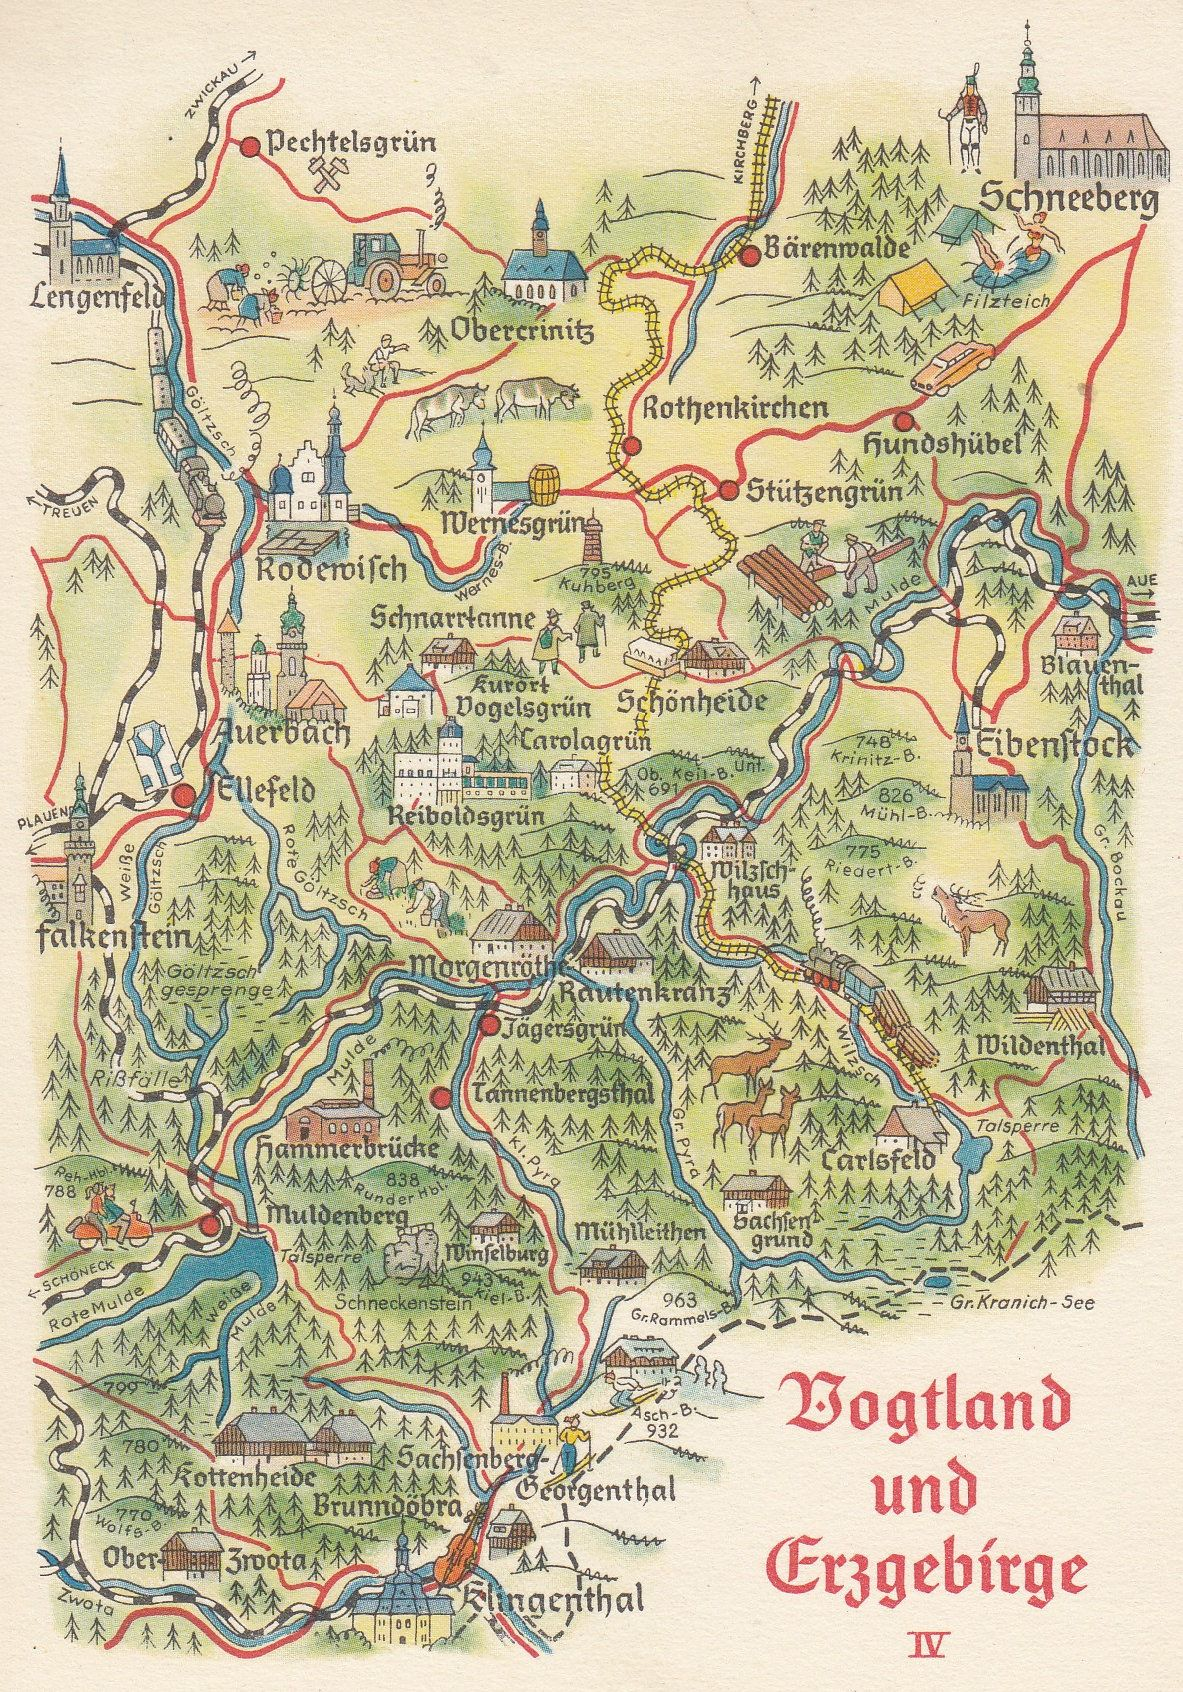 Map Of Germany Mountains.Zeulenroda Triebes Gries Thuringia Mountains German Karte Map Postcard